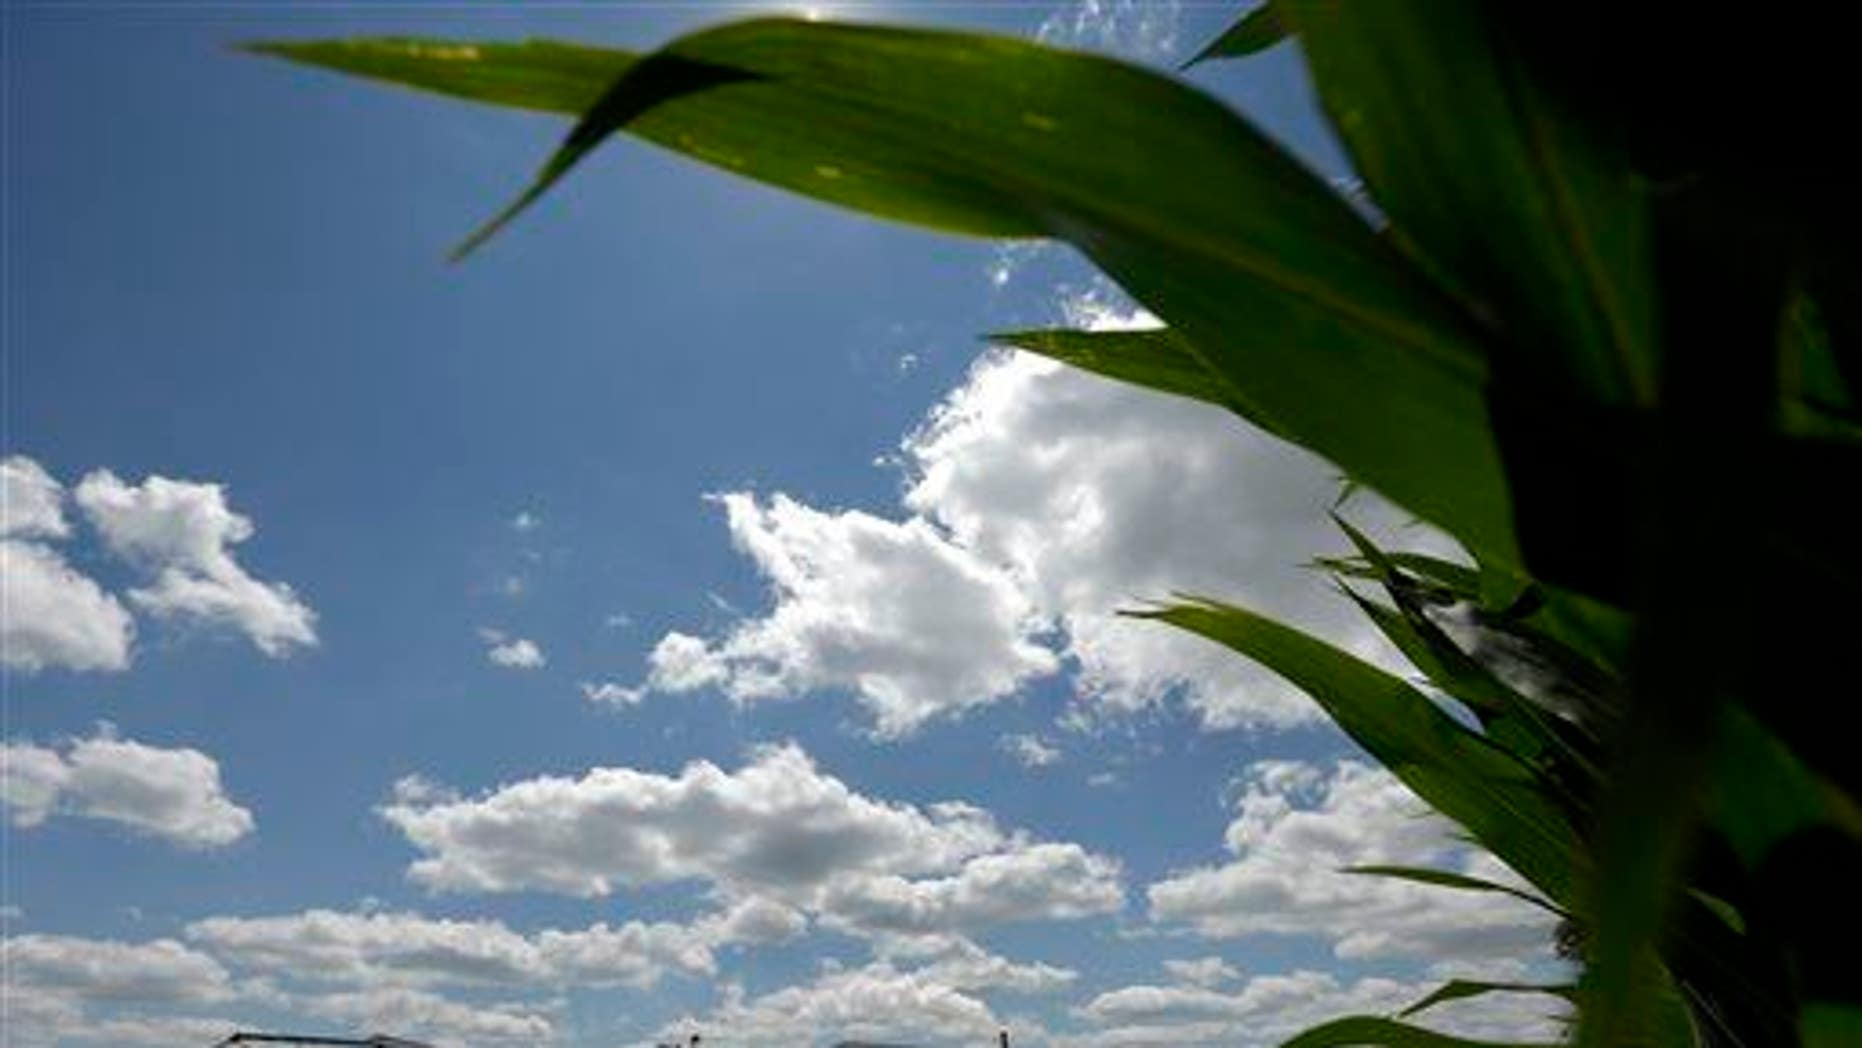 In this July 20, 2013 file photo, a plant that produces ethanol is next to a cornfield near Coon Rapids, Iowa.